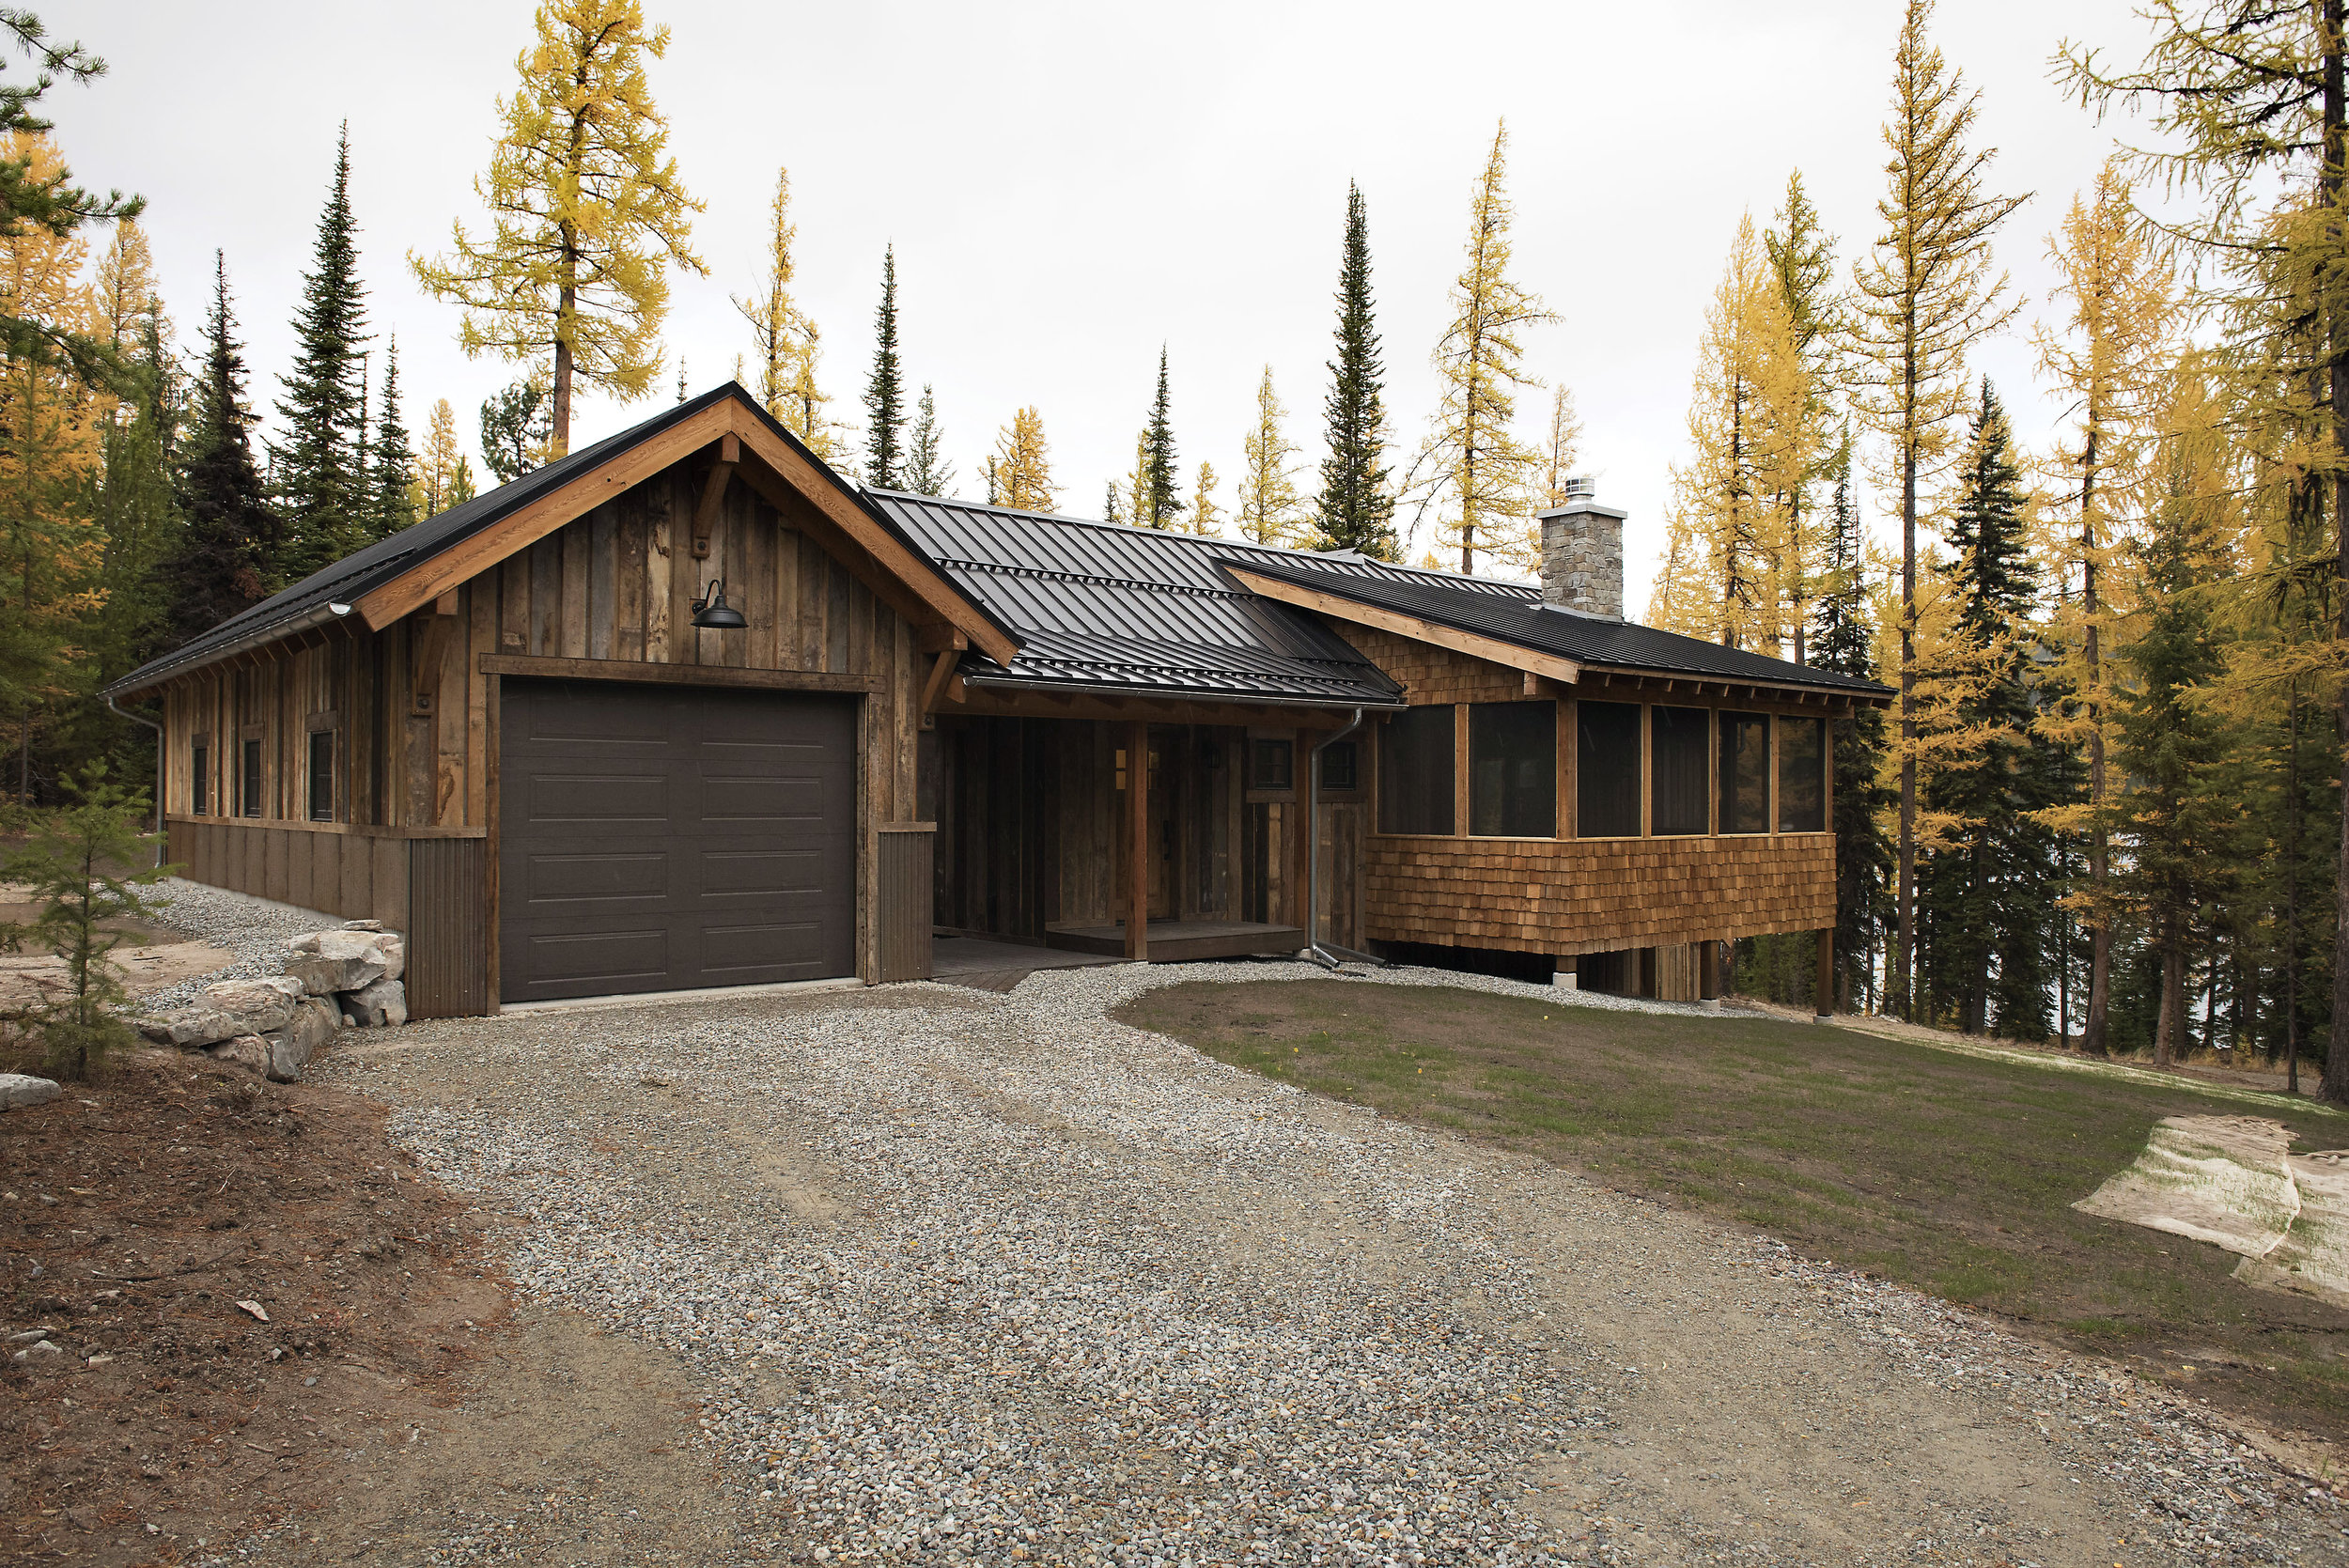 Reverse board & batten reclaimed siding gives the exterior of the cabin a warm & rustic feel - perfect for it's lakeside location amongst the beautiful tamaracks of Northwestern Montana!